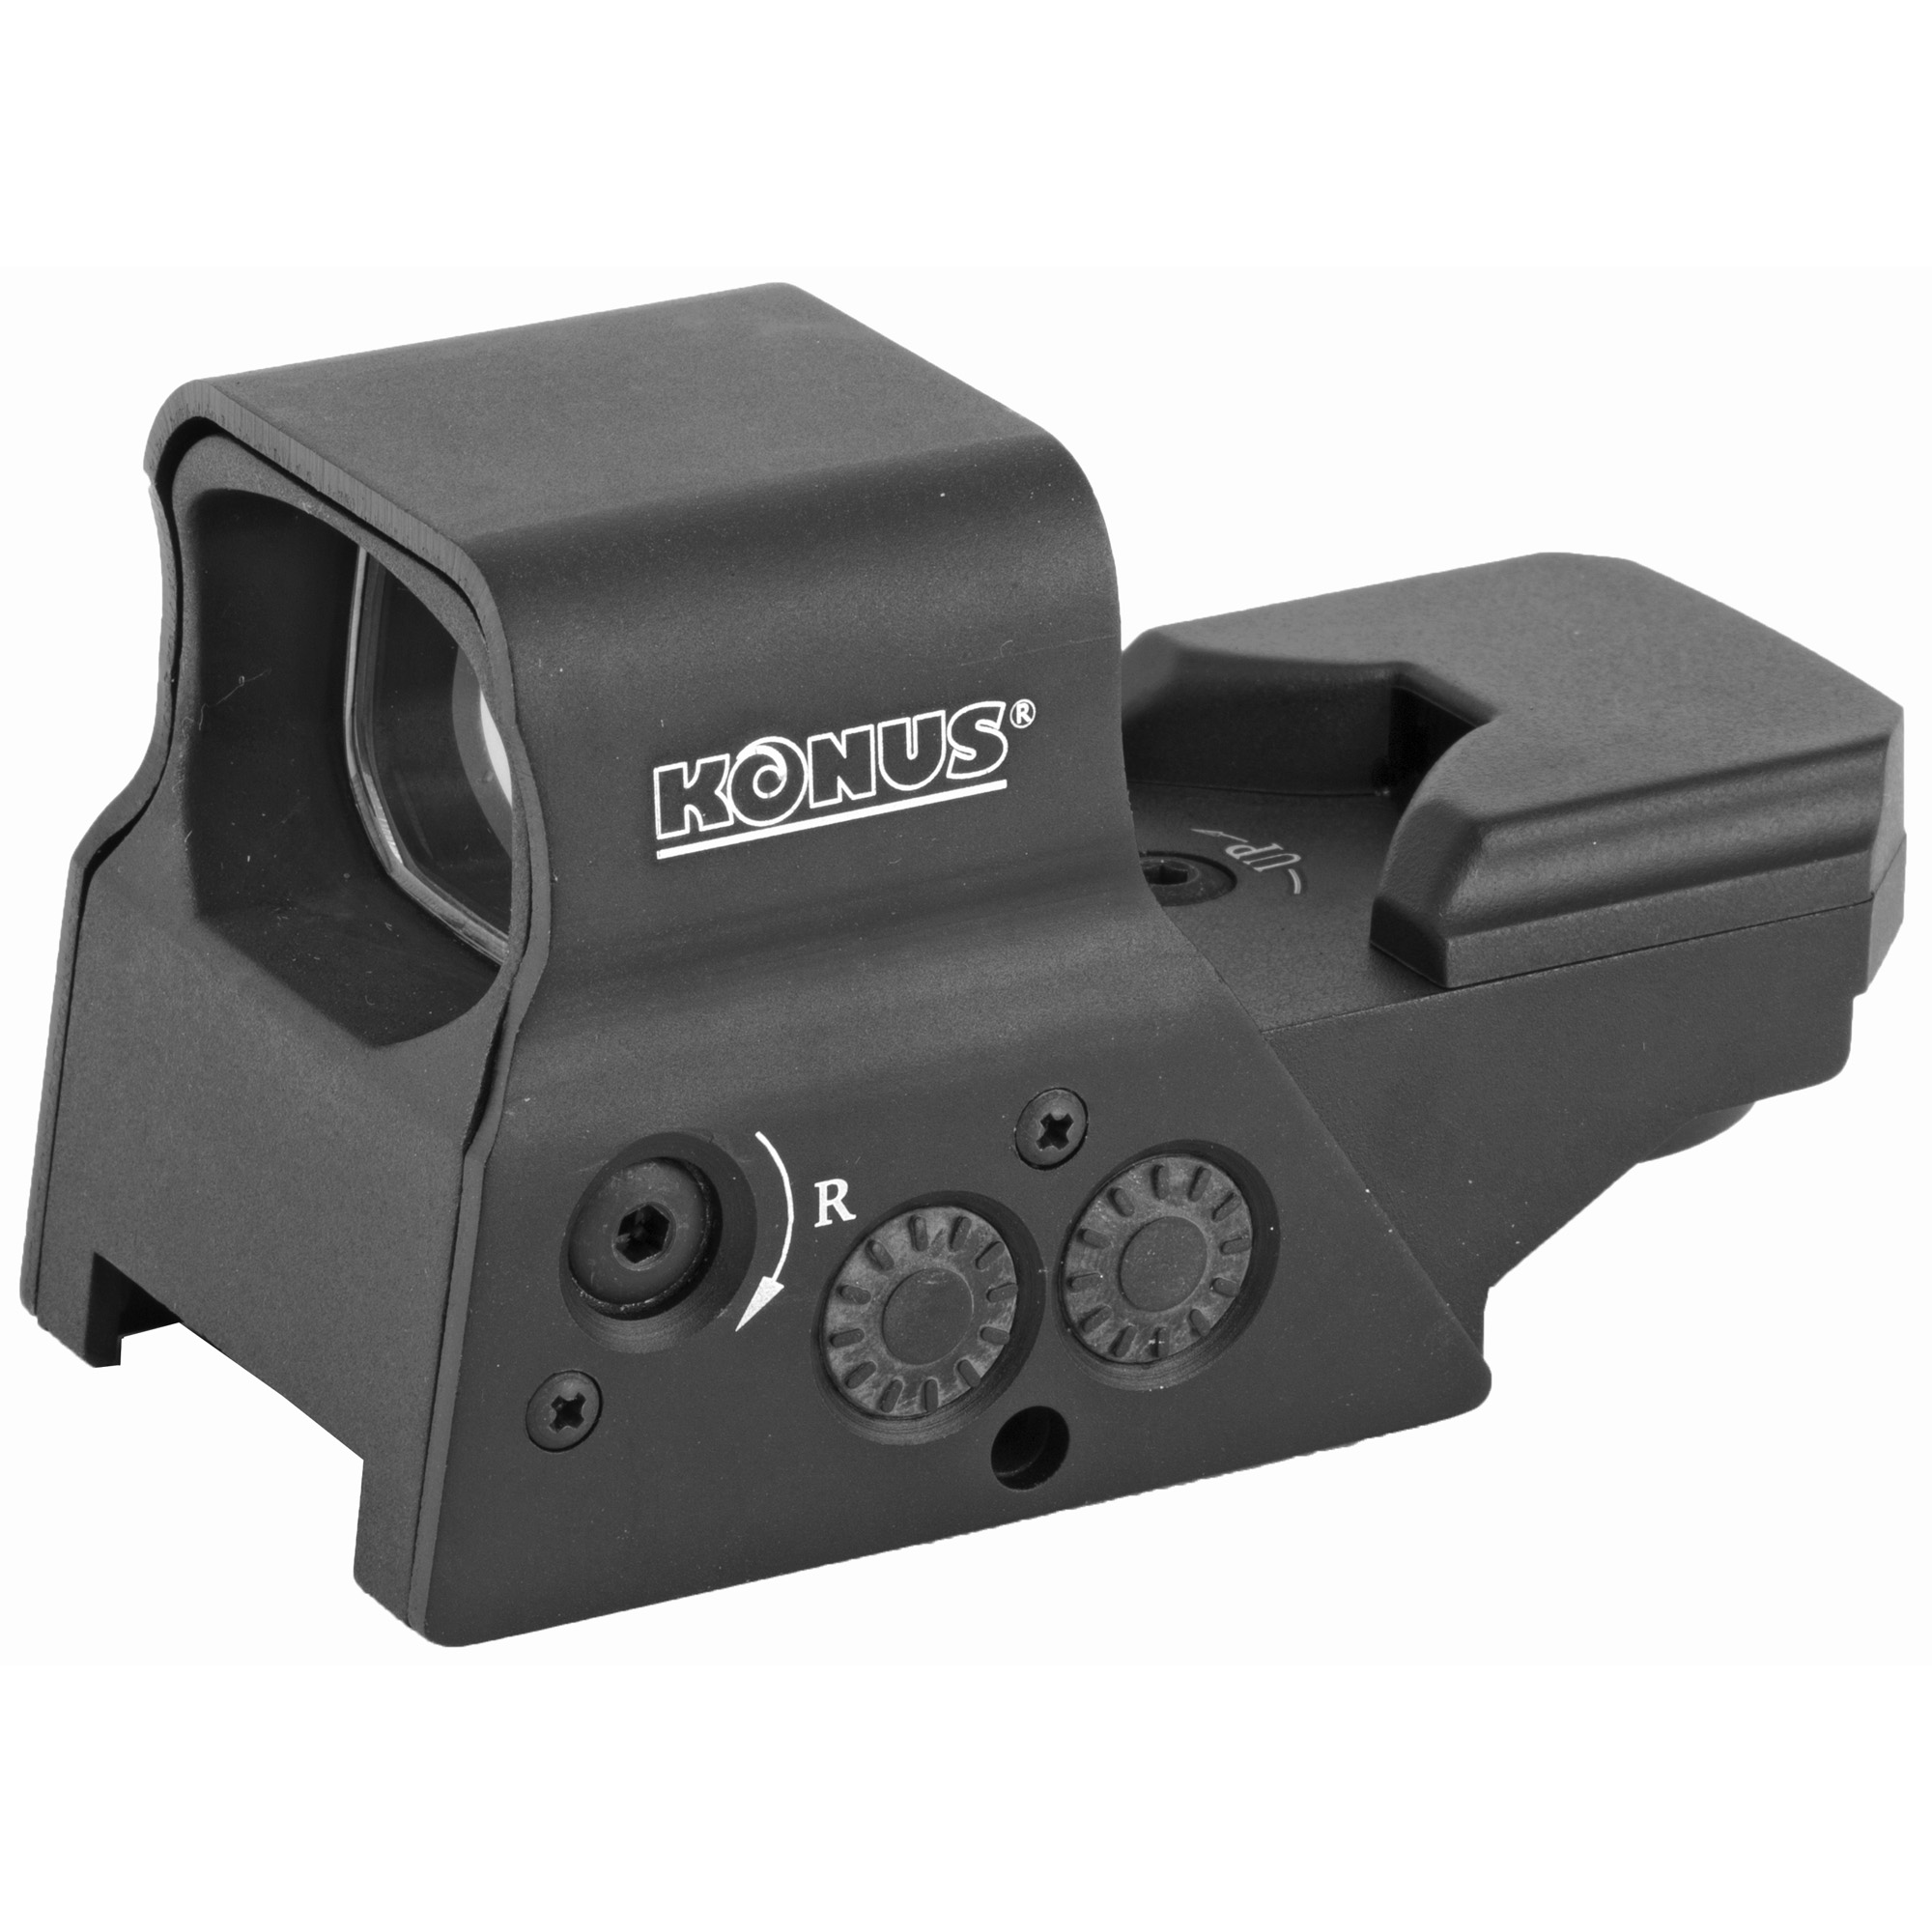 "This device provides you with as many as 8 different reticles to choose from. This unit is also rechargeable via the enclosed USB cable. It comes with a dual mount that can match either a 7/8"" or 3/8"" rail."